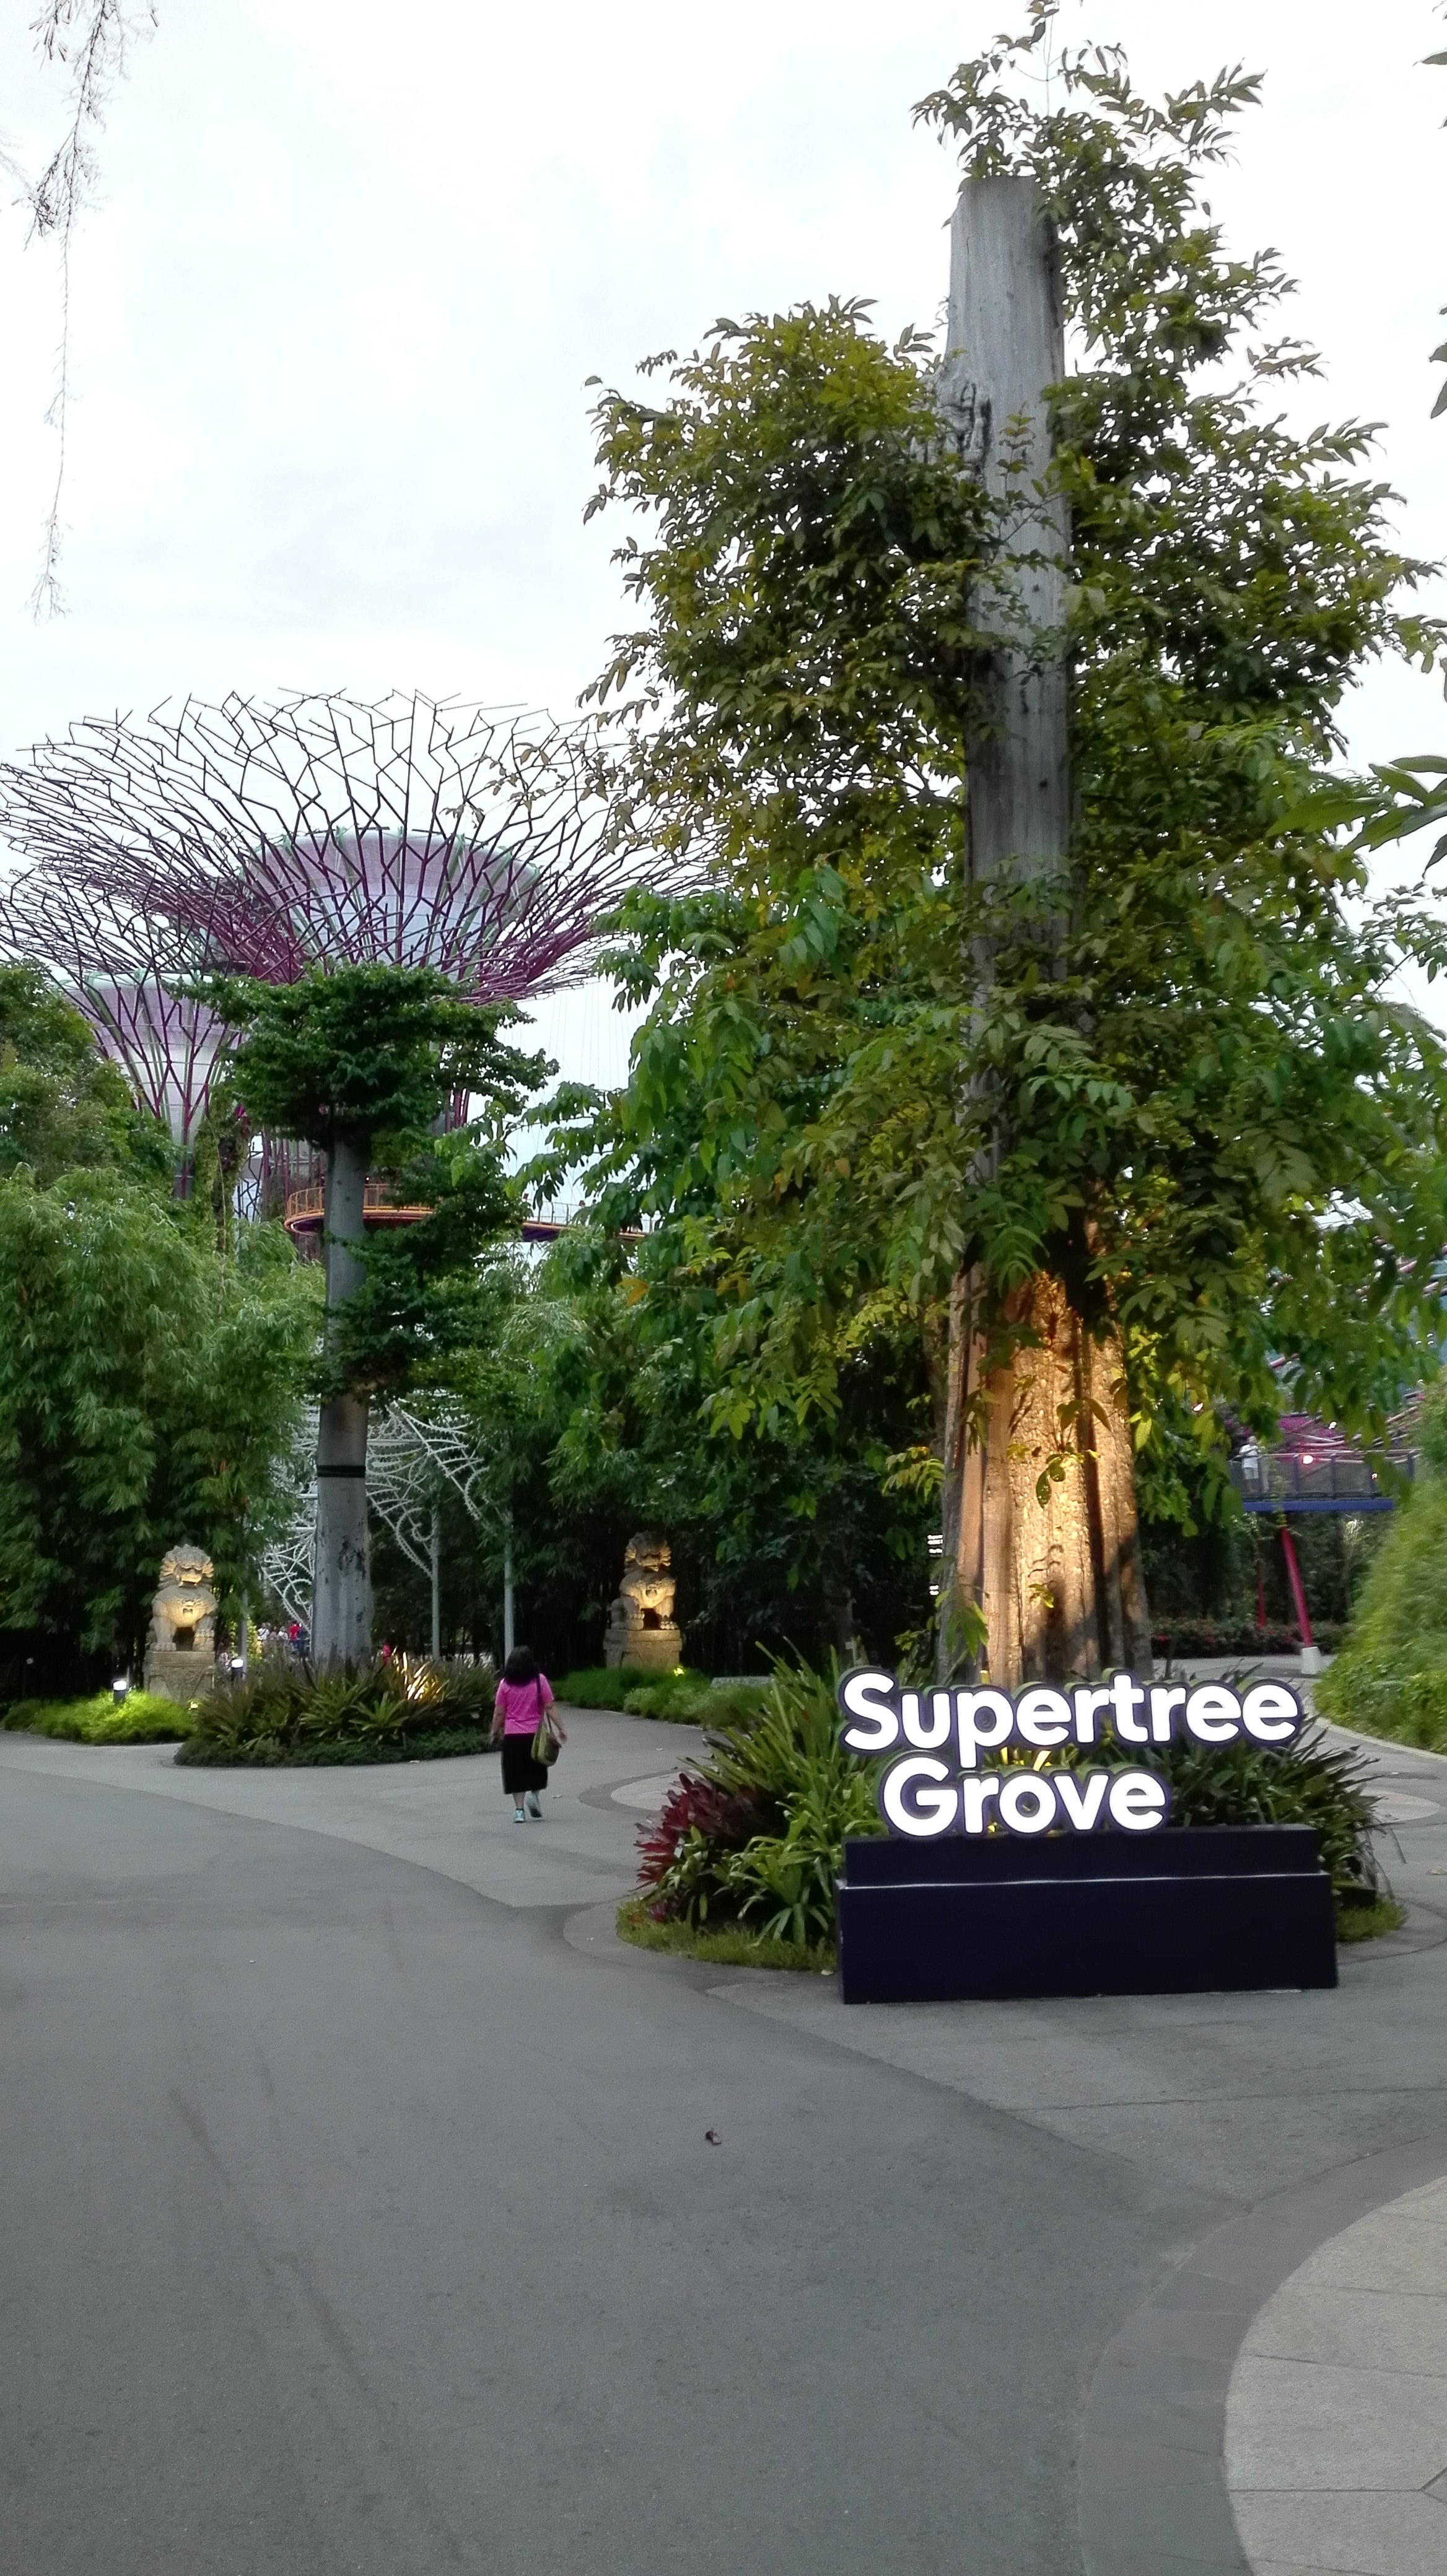 Supertree Groove